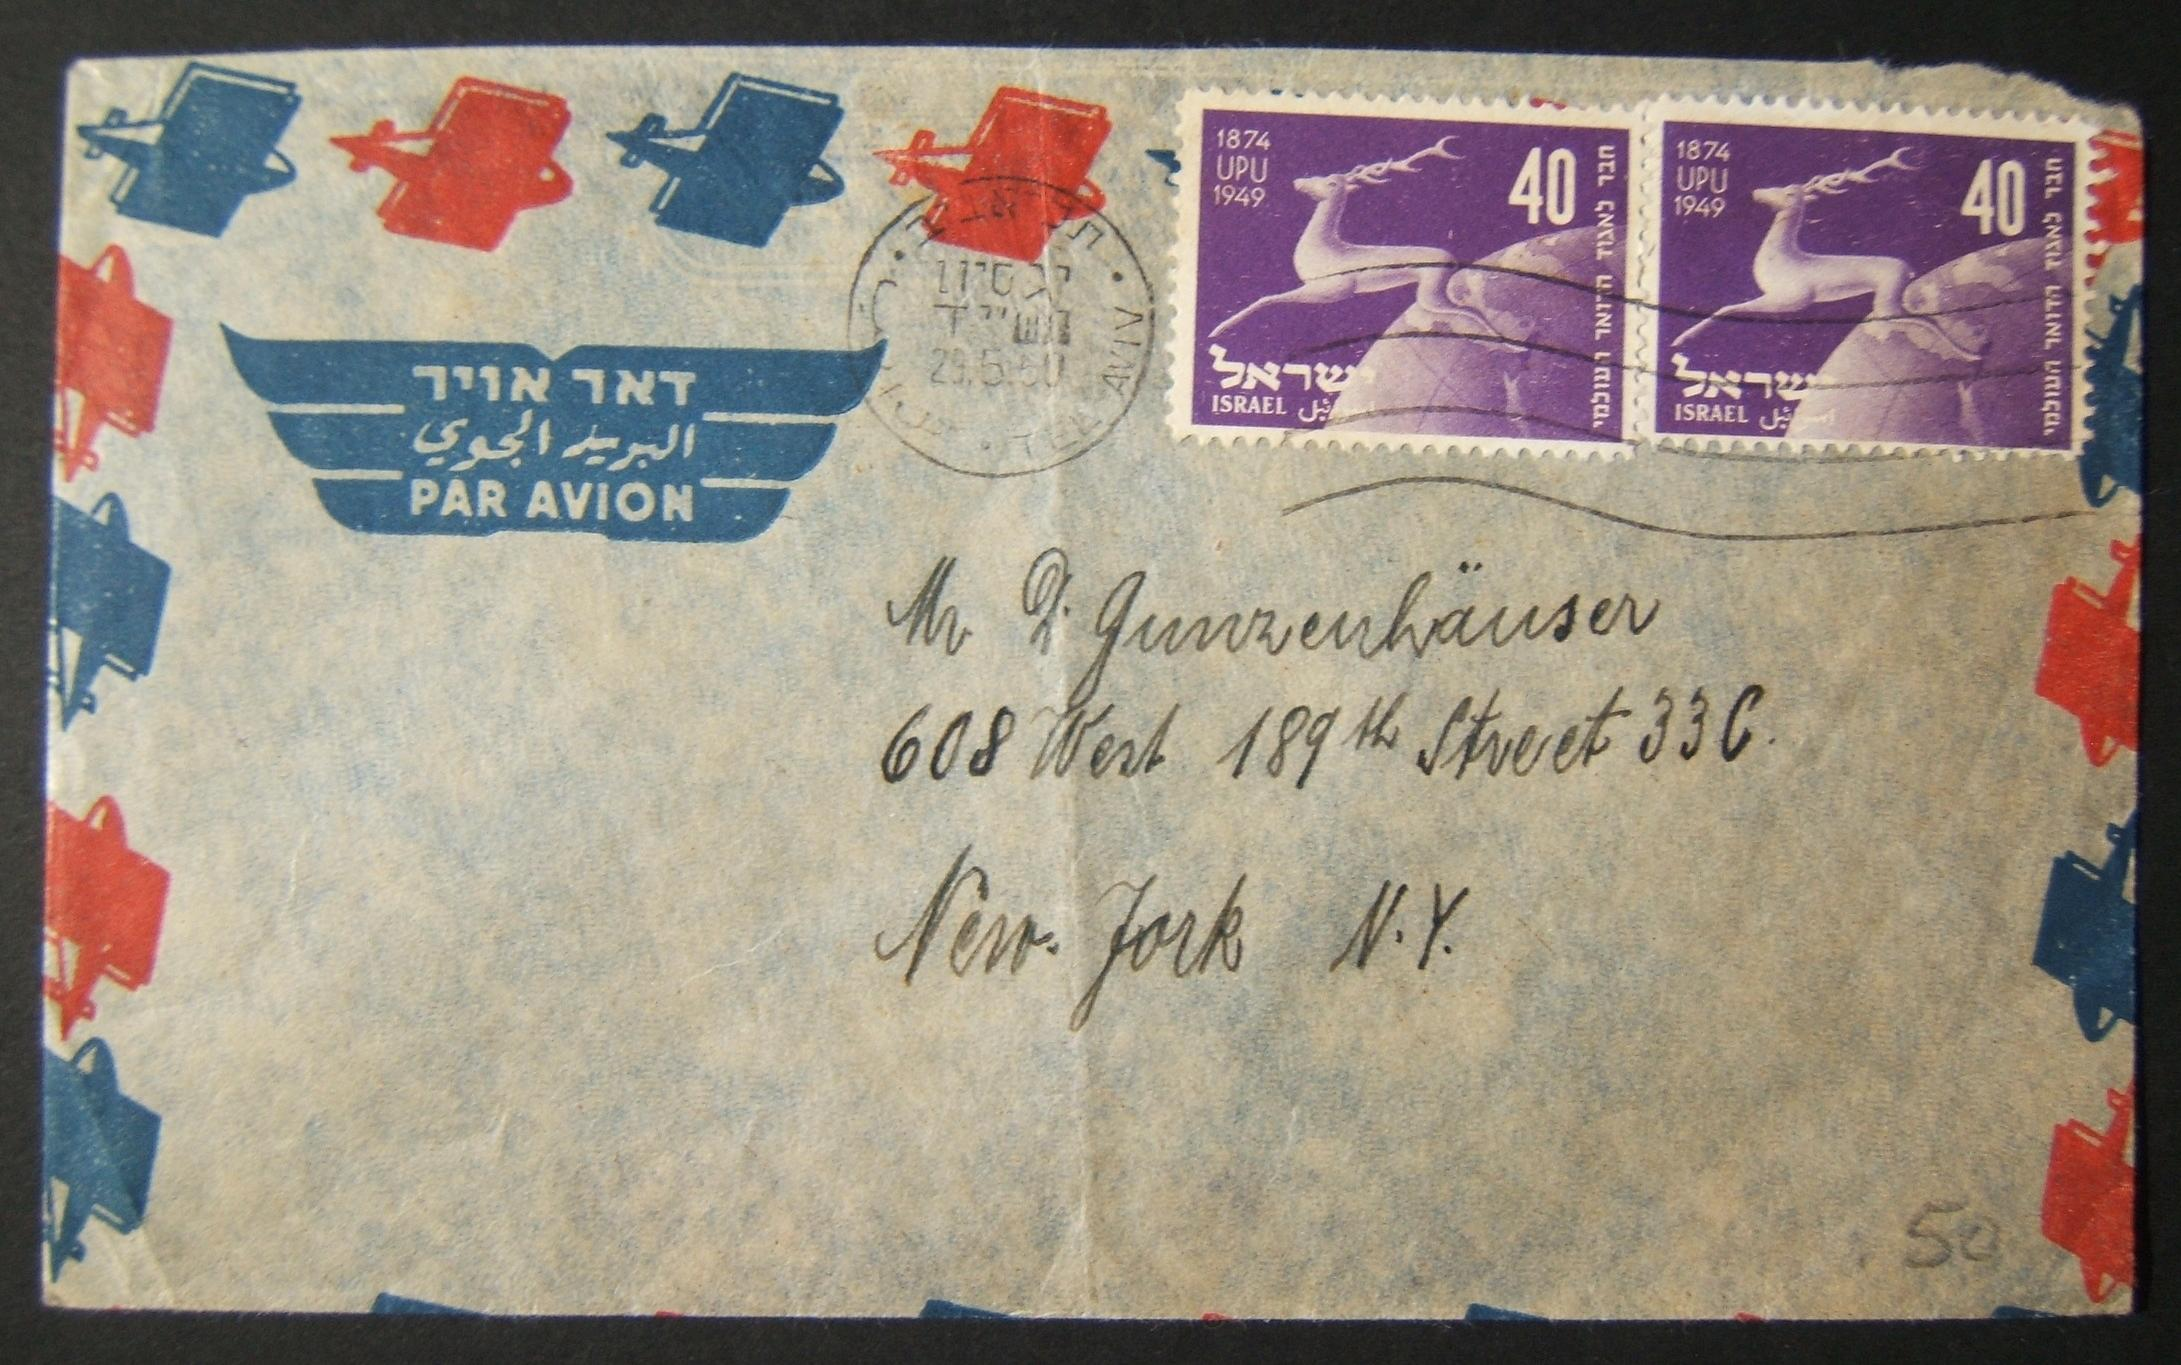 1950 UPU / rates & routes: 29-5-50 Israeli airmail stationary cover ex TLV to NYC franked 80pr at the FA-2a period letter rate to US using 2x 40pr (Ba27) tied by TLV machine cancel